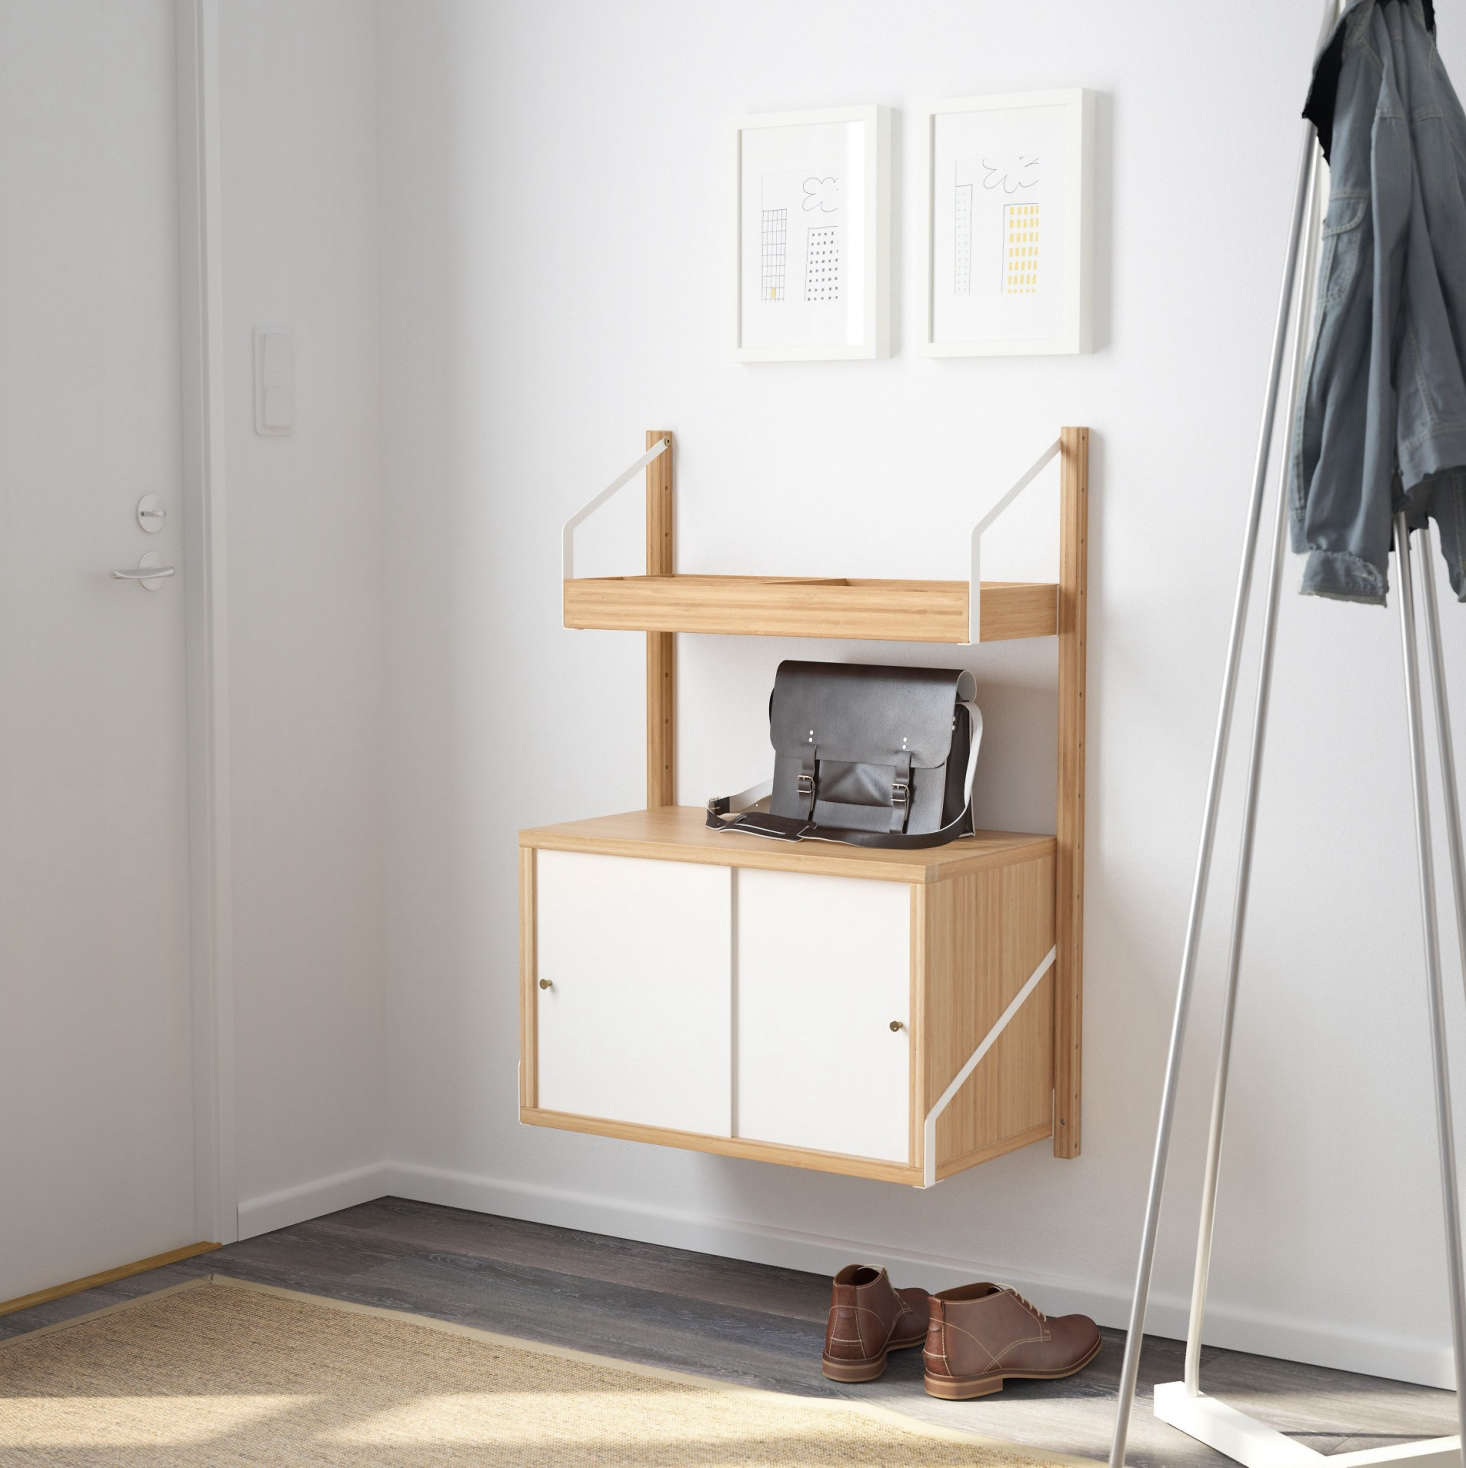 Ikea Wall Storage Units 10 Favorites Best Of Ikea S 2018 Collection Remodelista